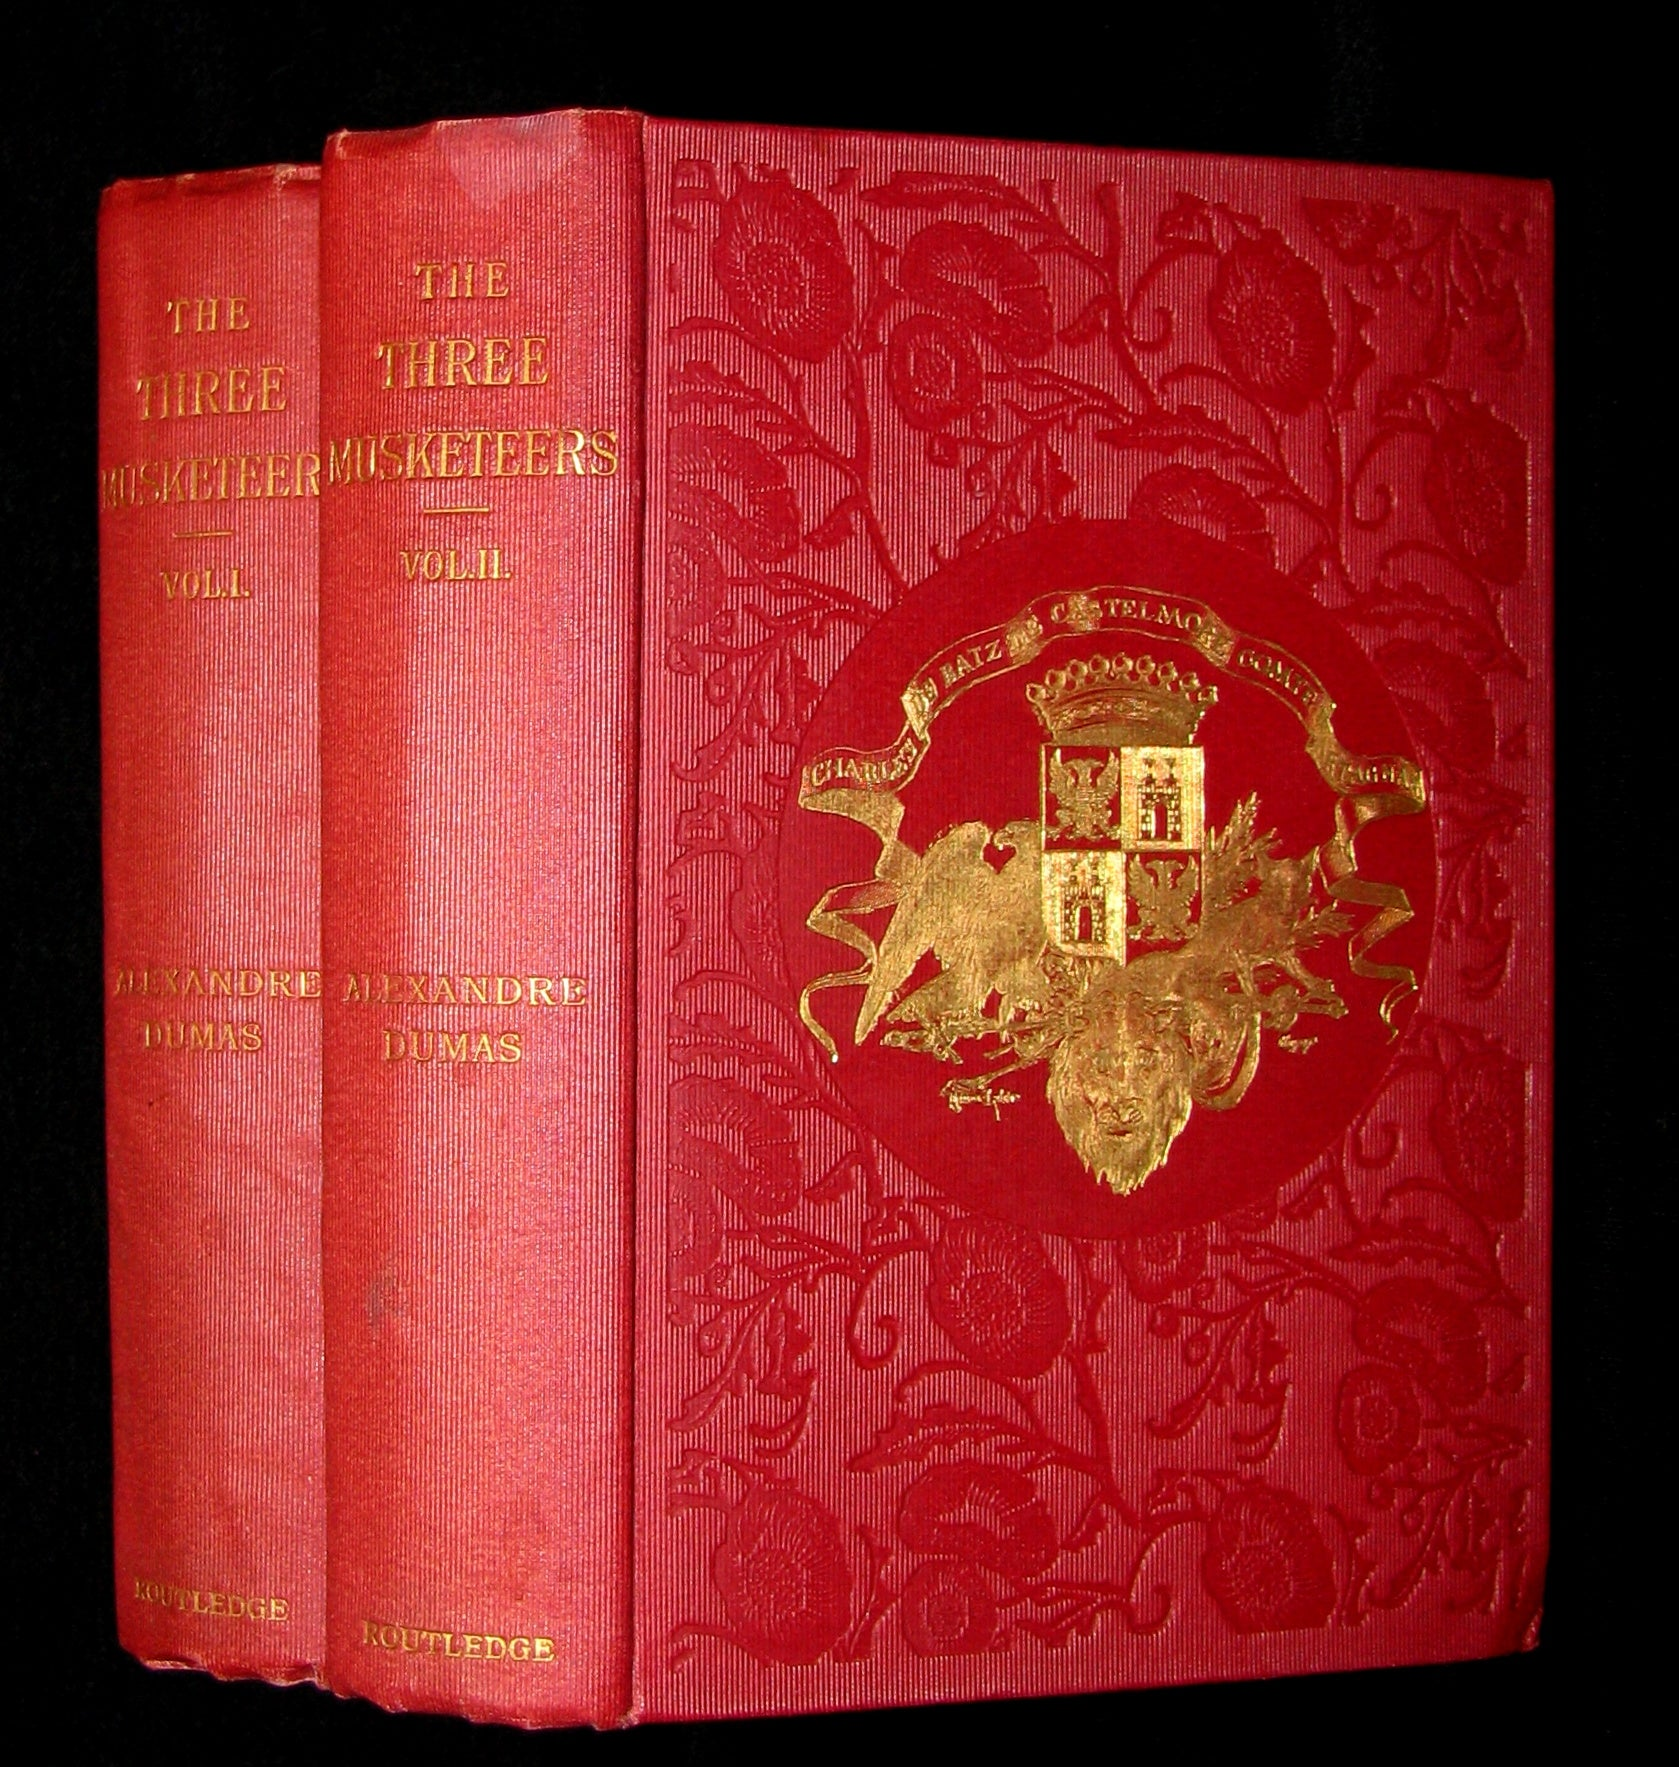 1895 Rare Book set - The Three Musketeers by Alexandre Dumas